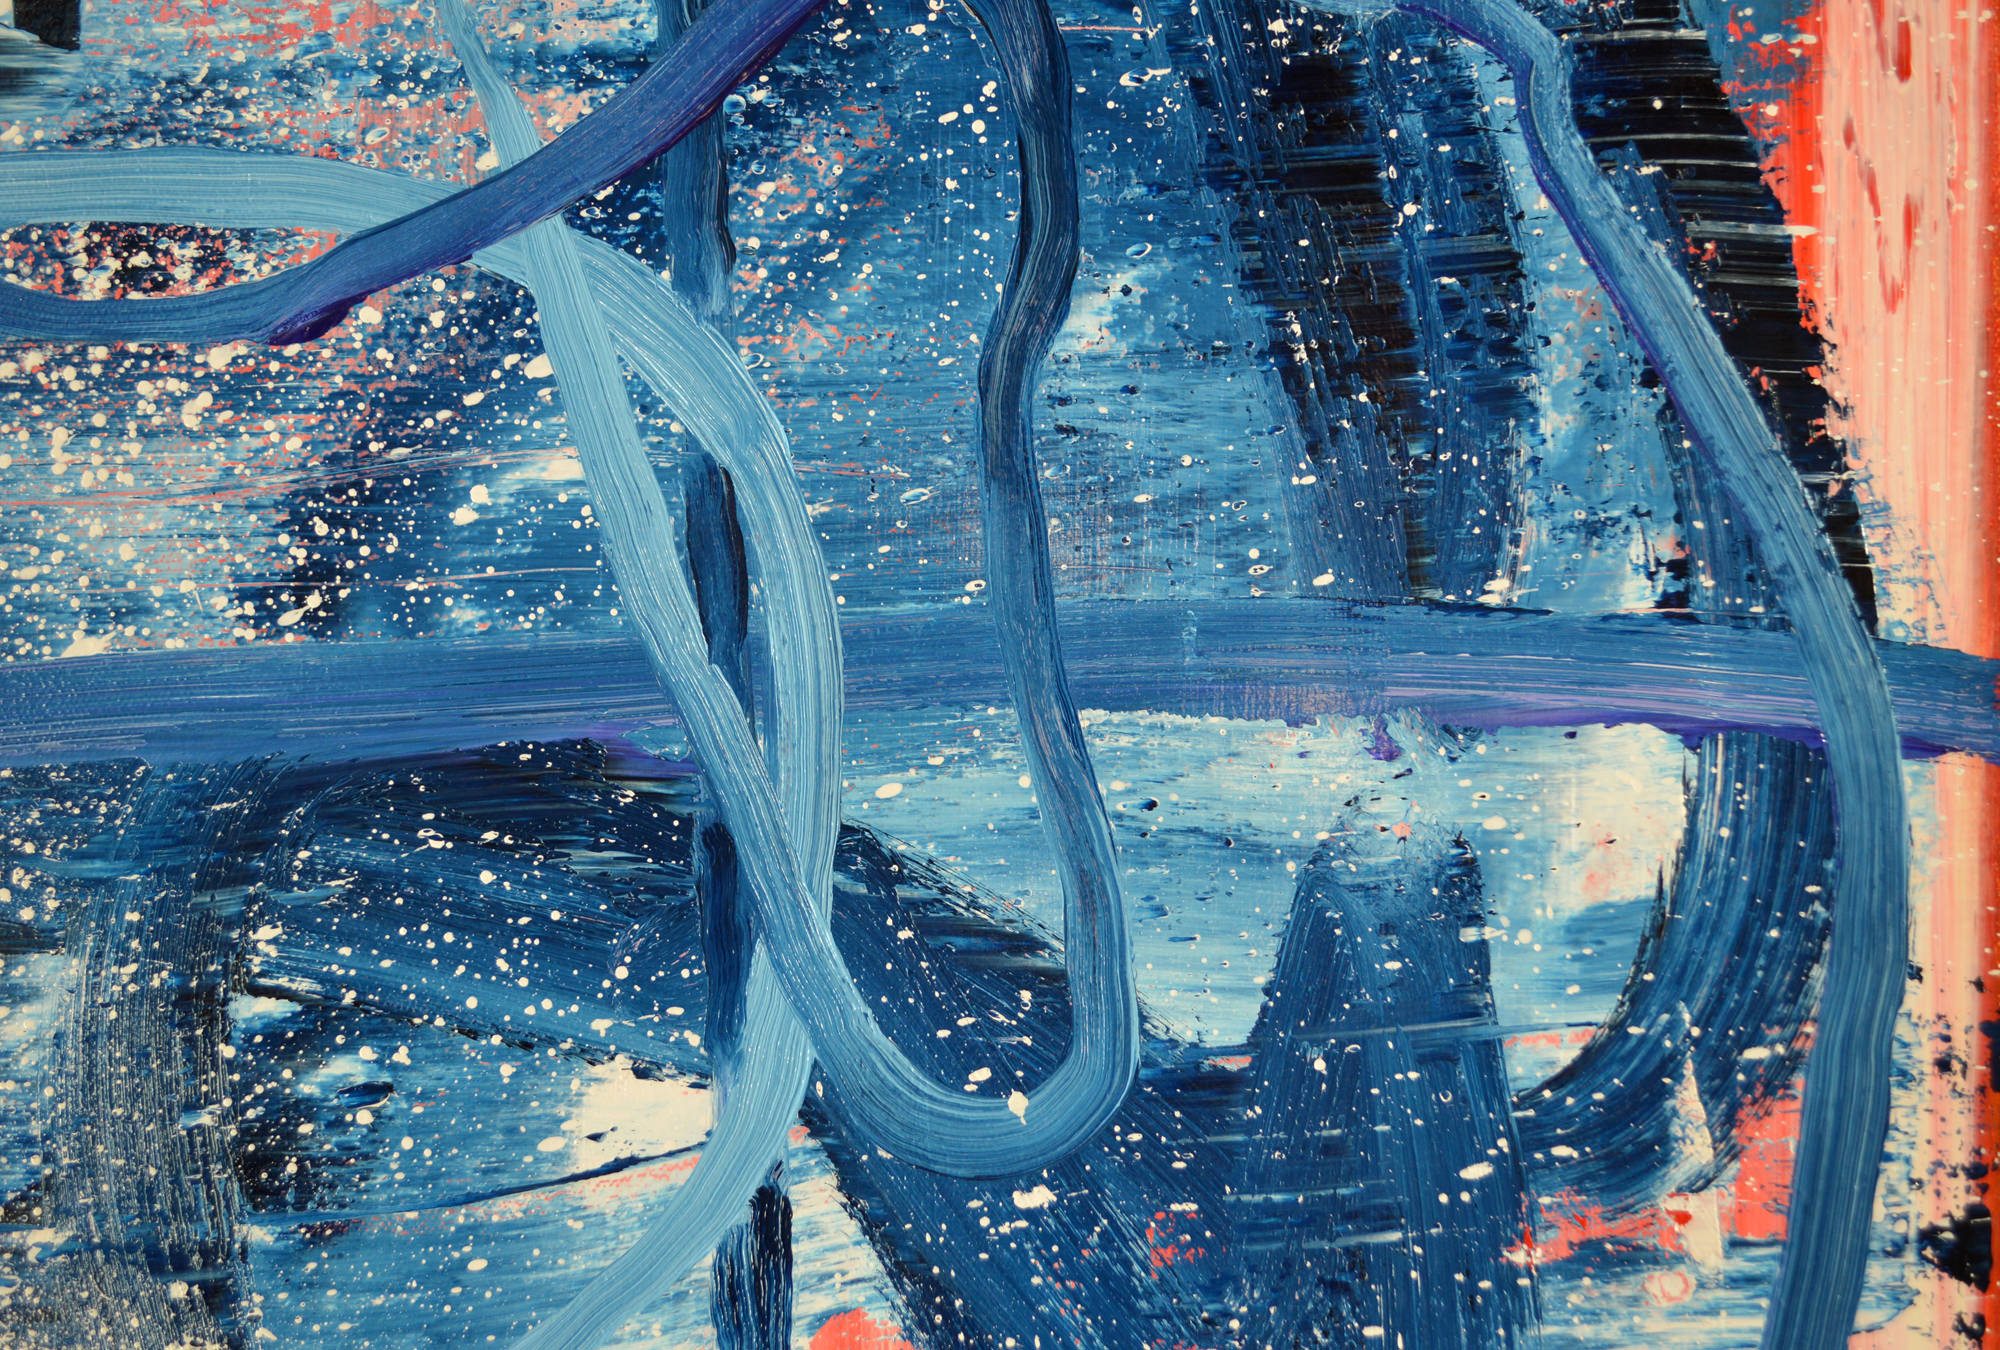 Robert West. Borderline Series. Abstract Painting No.75. Oil on Canvas. 200 x 200 cm. 2013-2014 -  Close Up 15.jpg